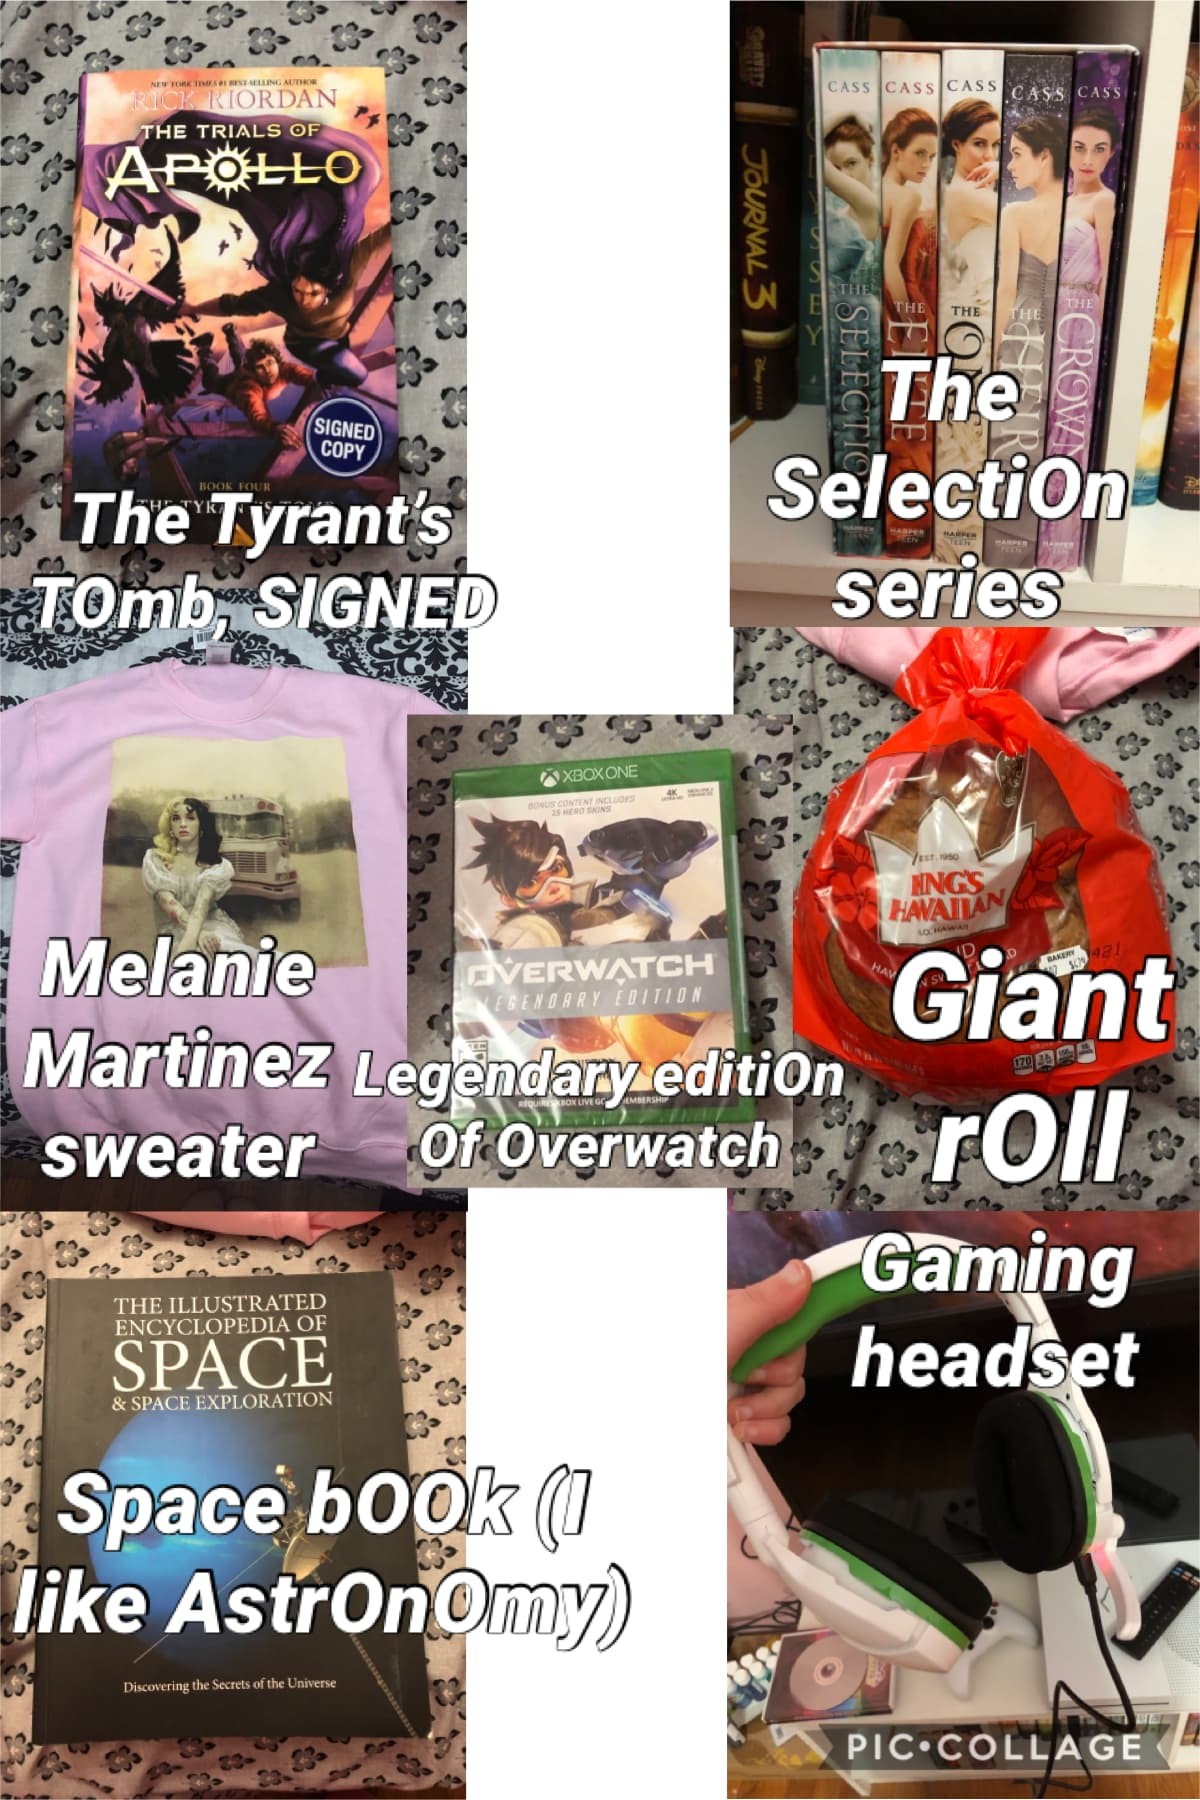 Check Out sOme Of the stuff I gOt fOr Christmas y'all. I nO lOnger cOnsider myself a nerd, I nOw cOnsider myself a gamer. Am I the Only persOn that asks fOr bOOks as presents? MERRY CHRISTMAS Y'ALL!!! THX FOR ALL DE FOLLOWS AND LE LIKES AND COMMENTS!!! HA